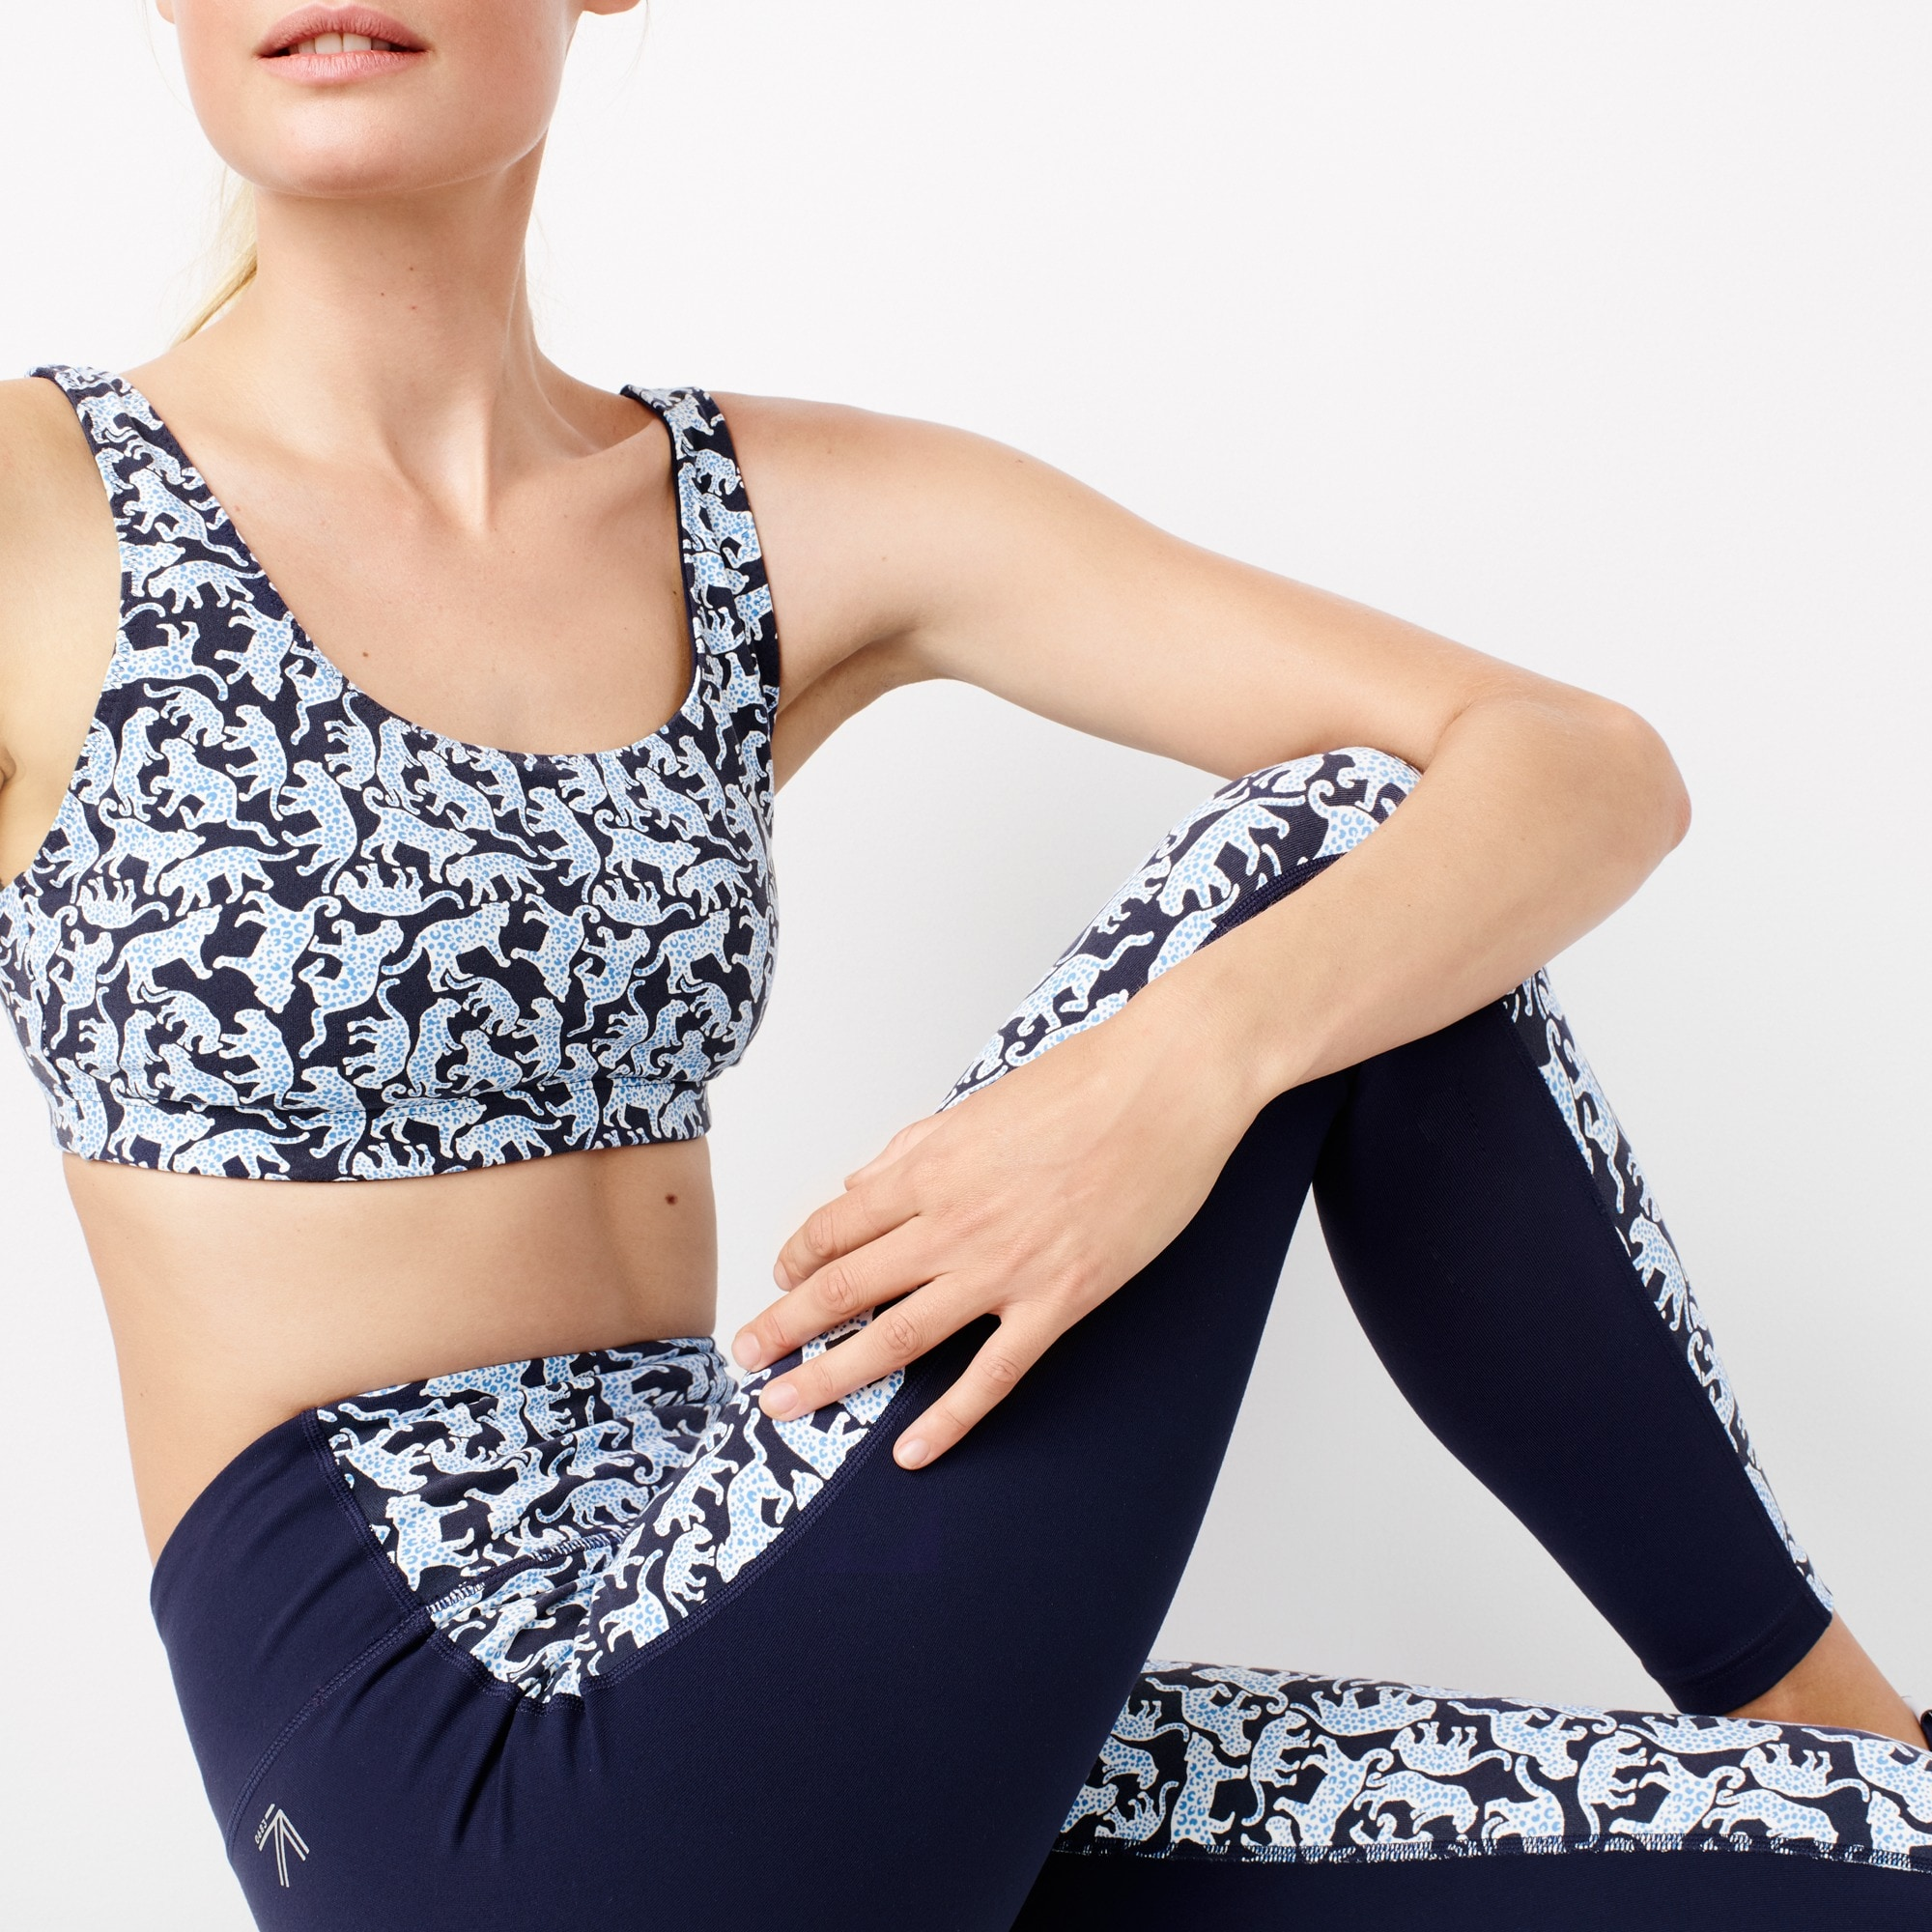 Image 4 for New Balance ® for J.Crew high waisted performance leggings in Drake's jaguar print